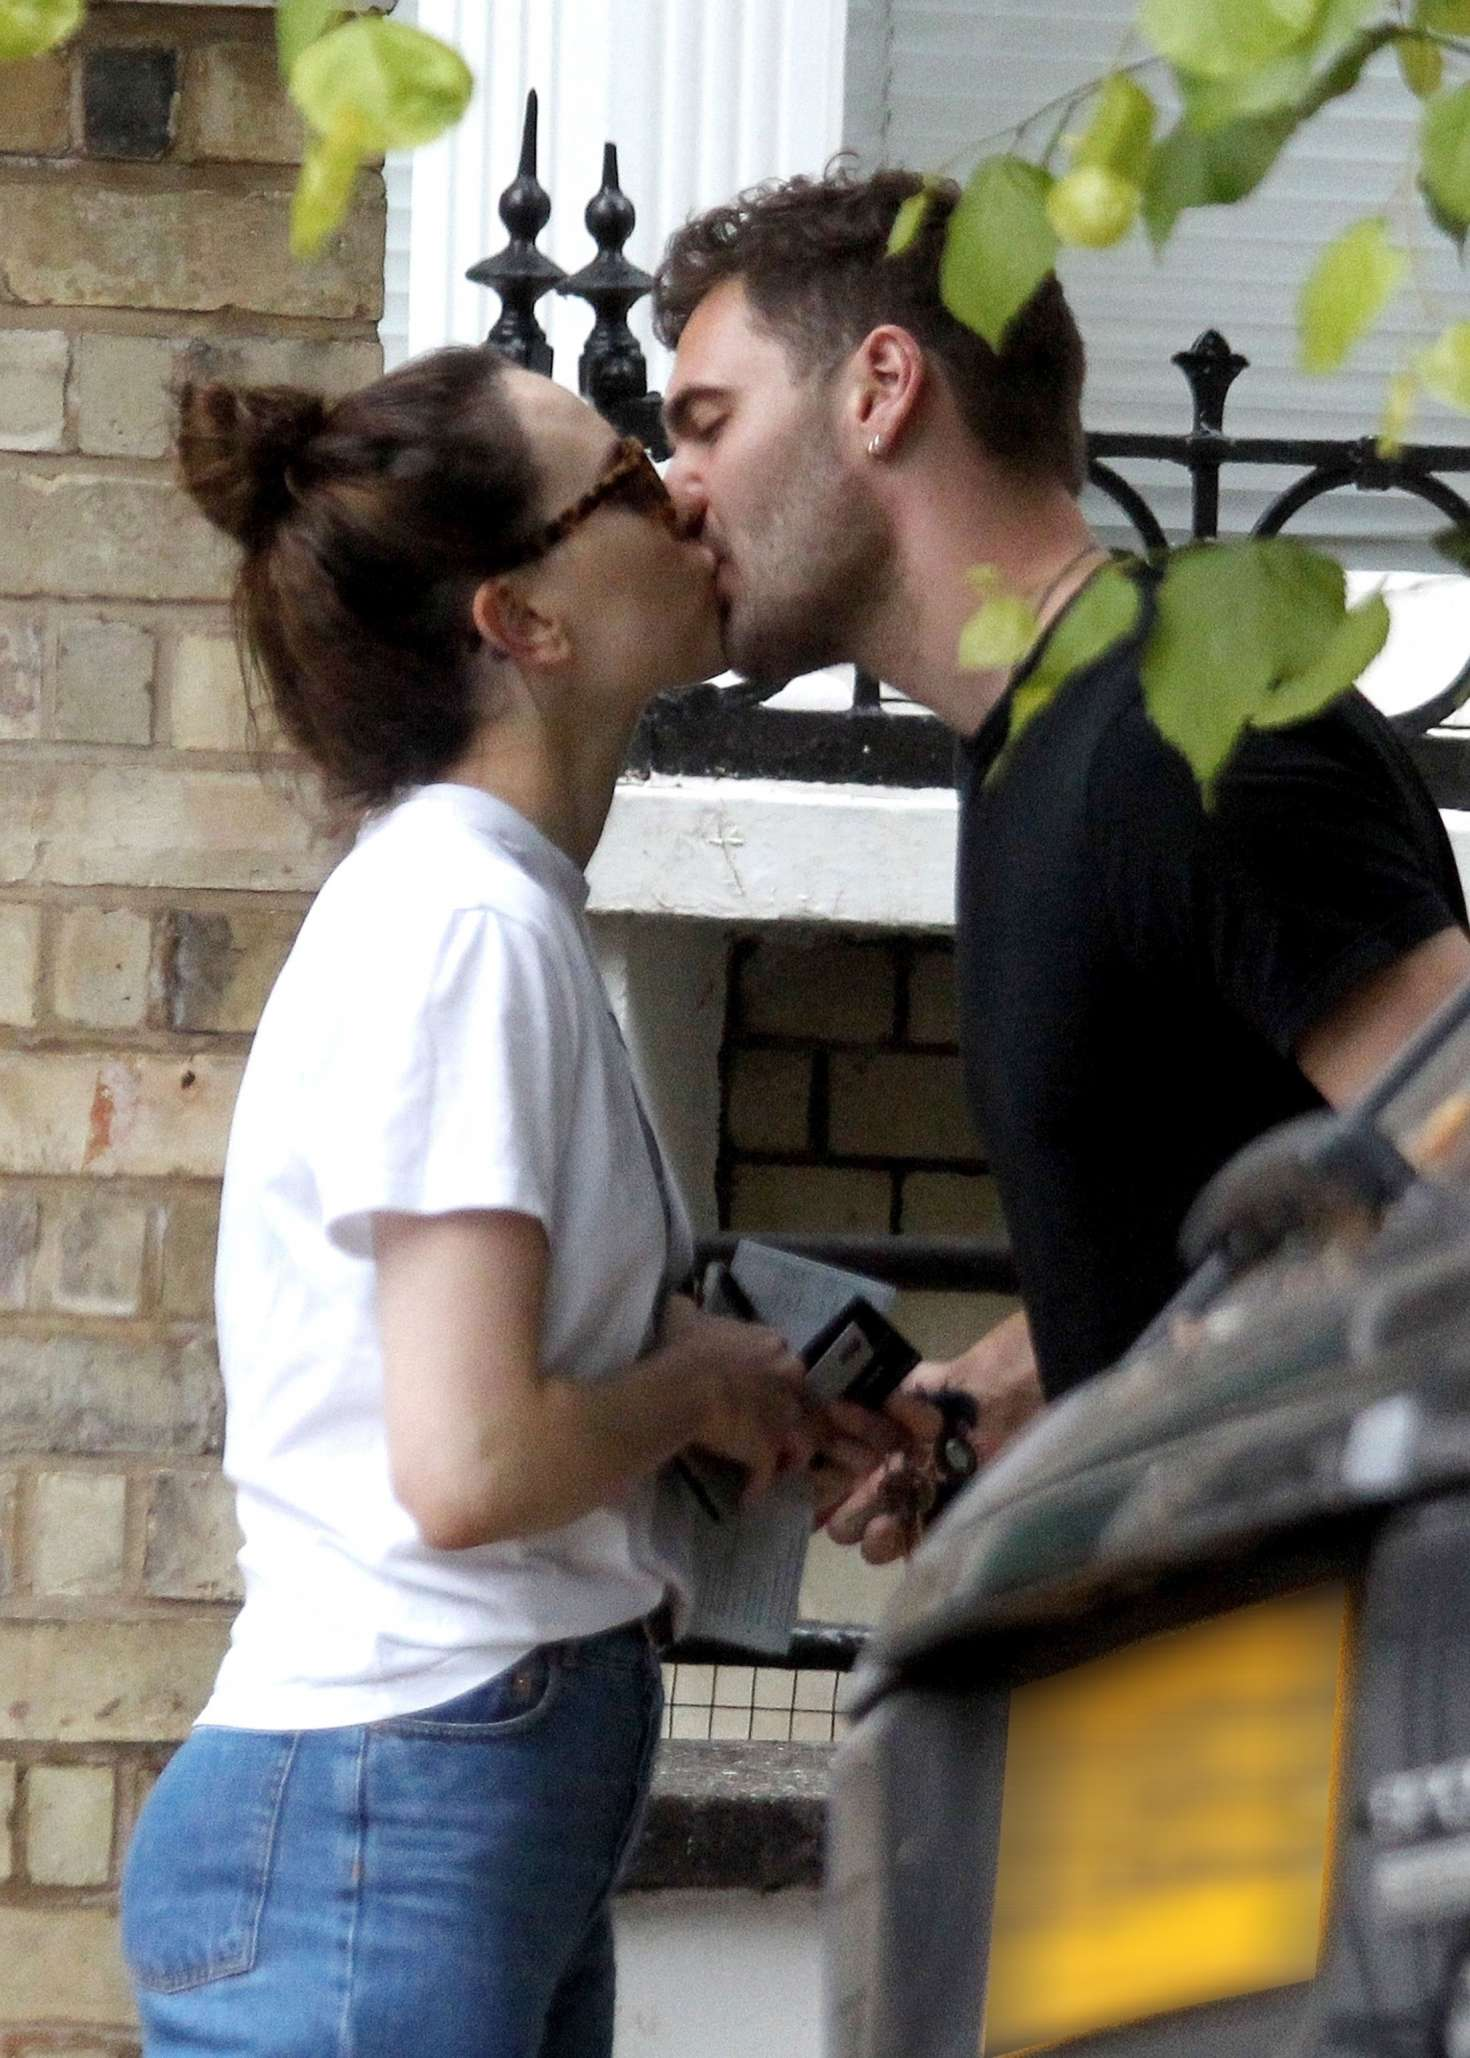 Daisy Ridley Kiss With Her Boyfriend Tom Bateman In London